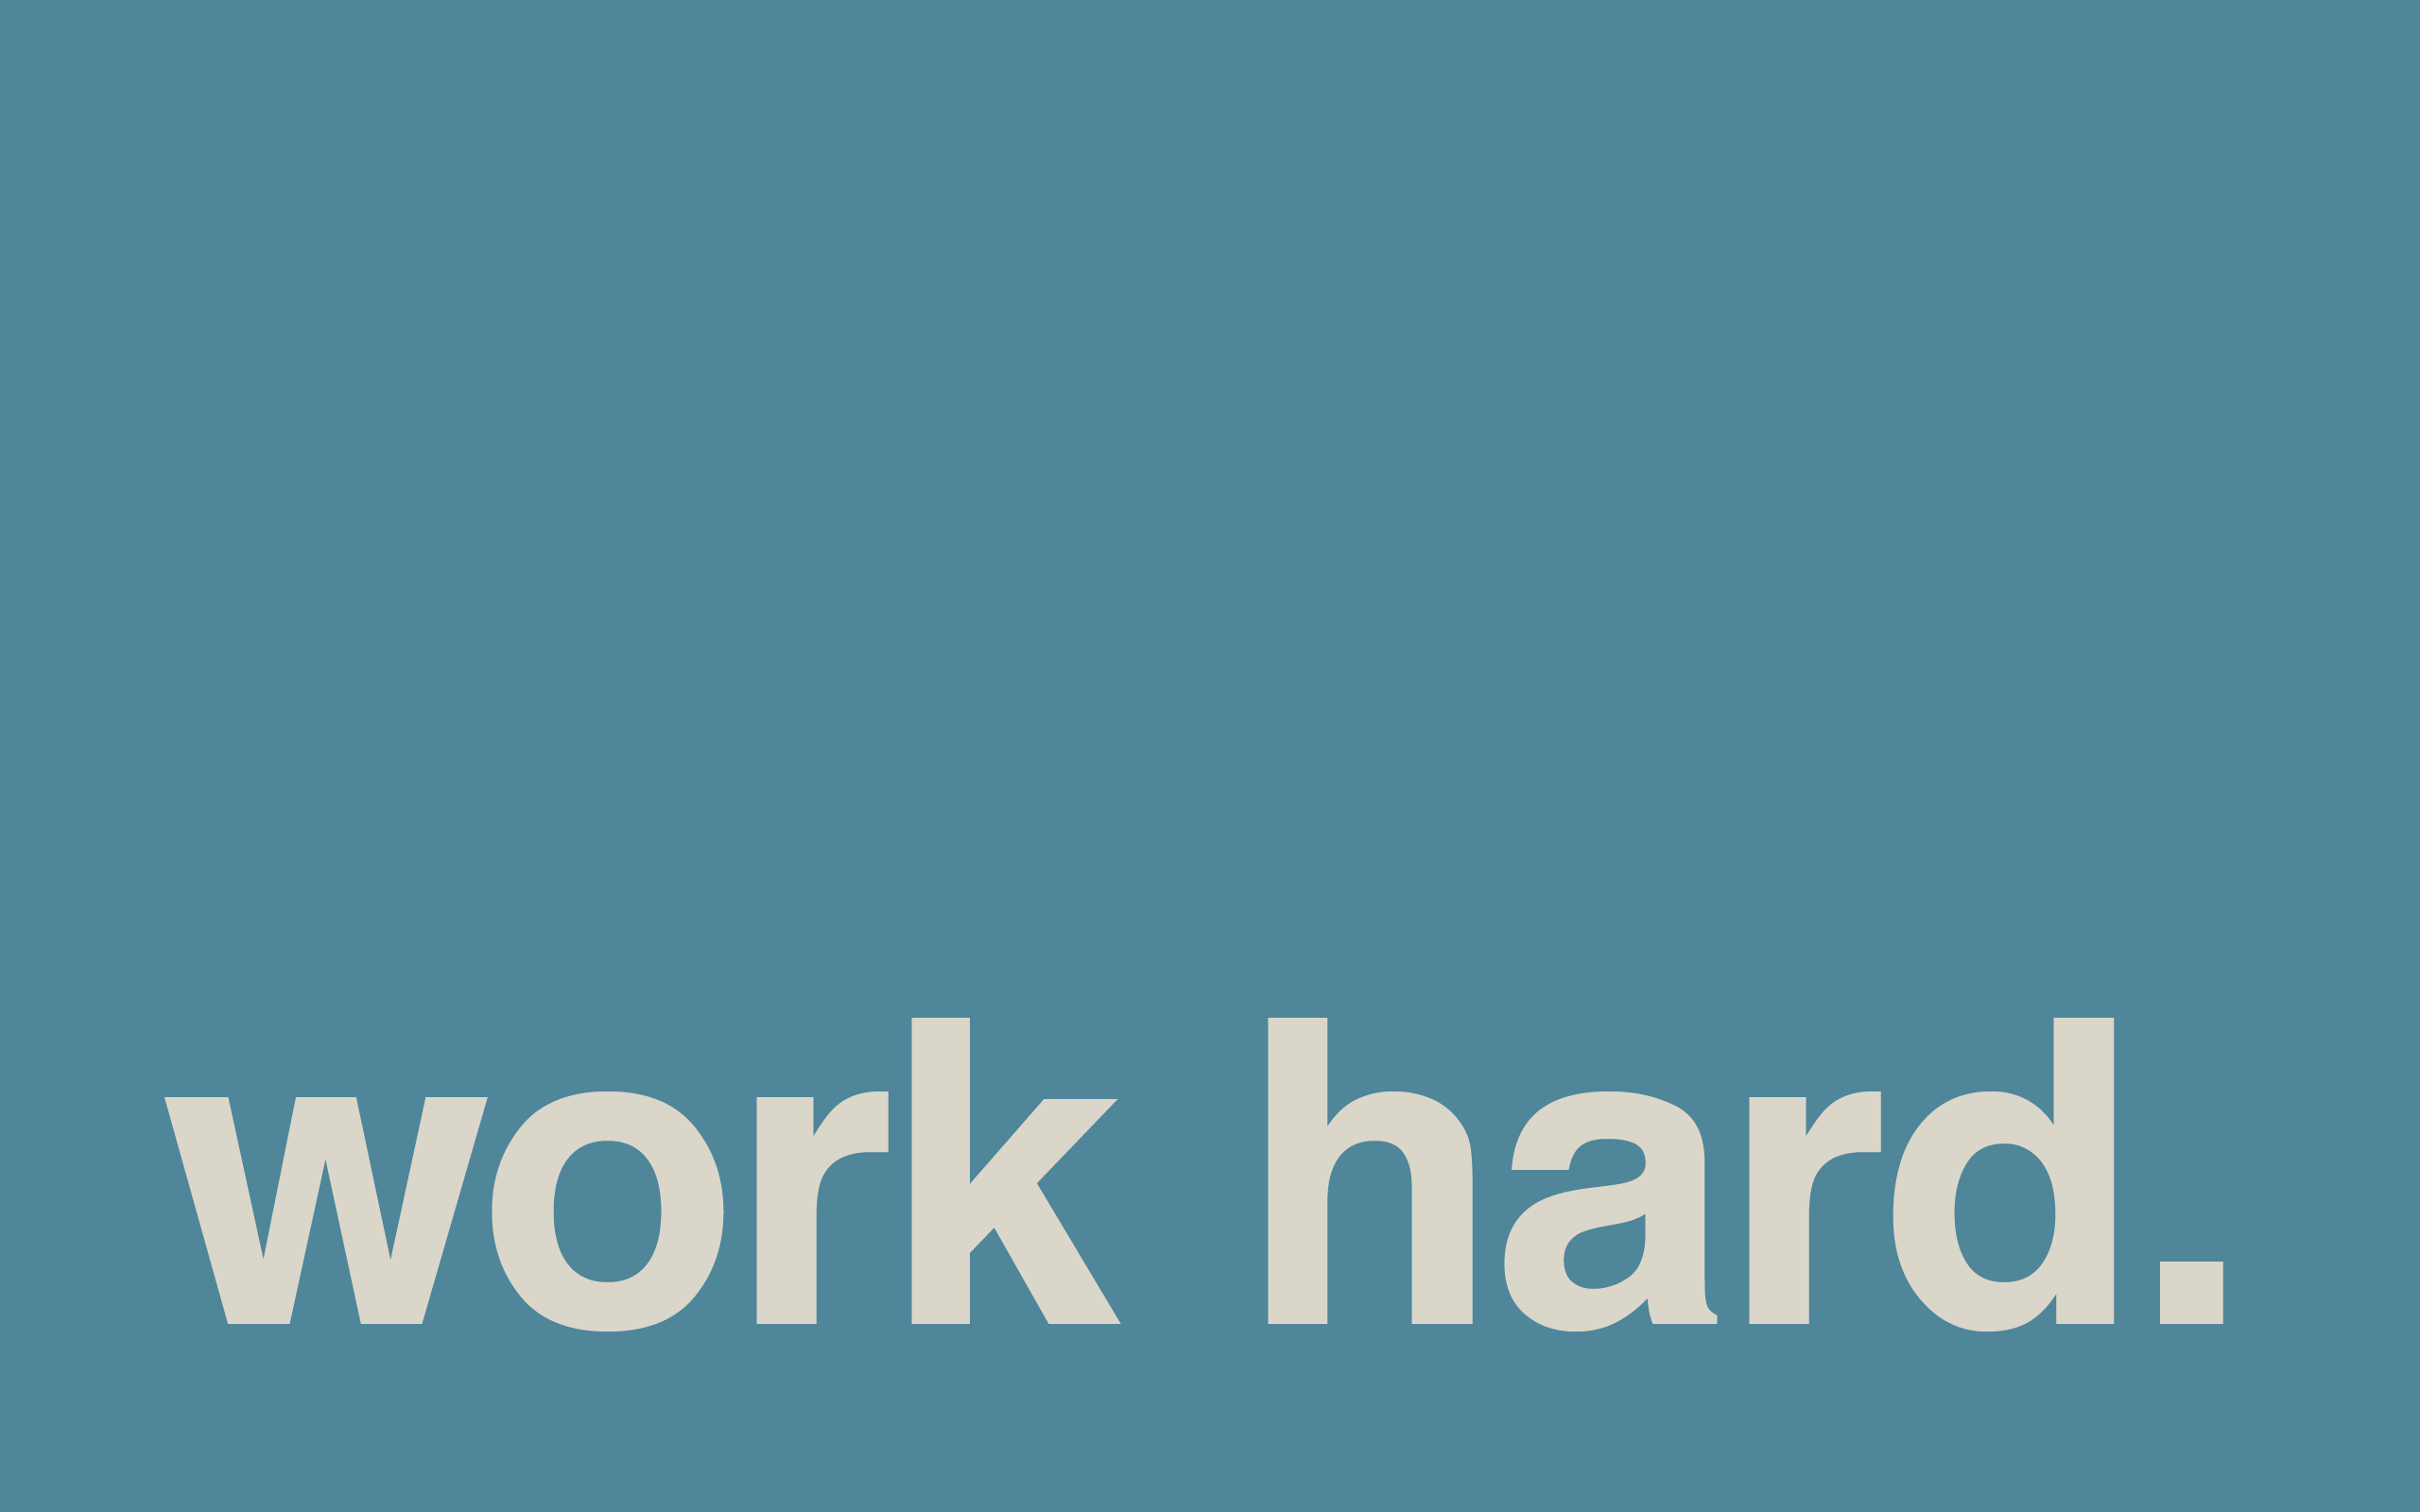 minimal-desktop-wallpaper-work-hard